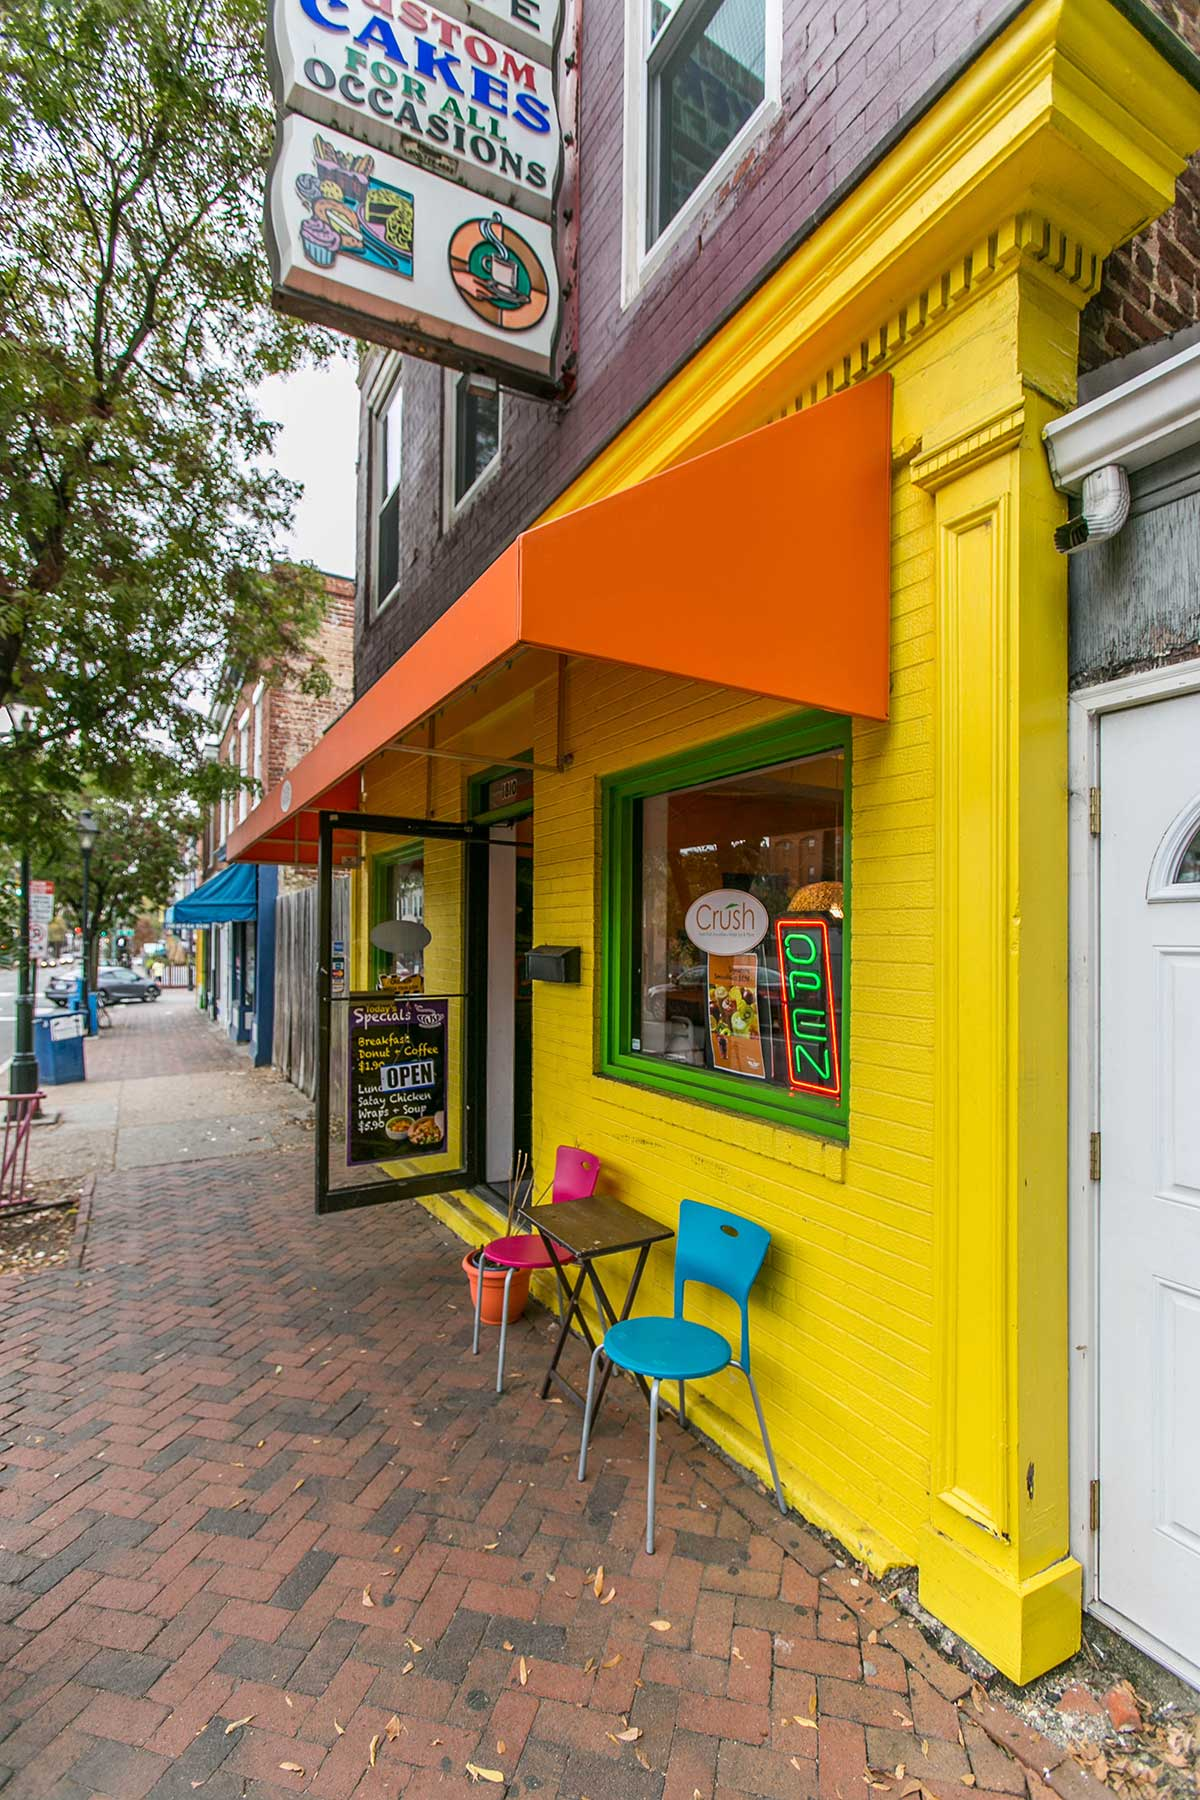 Cake shop in Shockoe Bottom, Richmond, VA